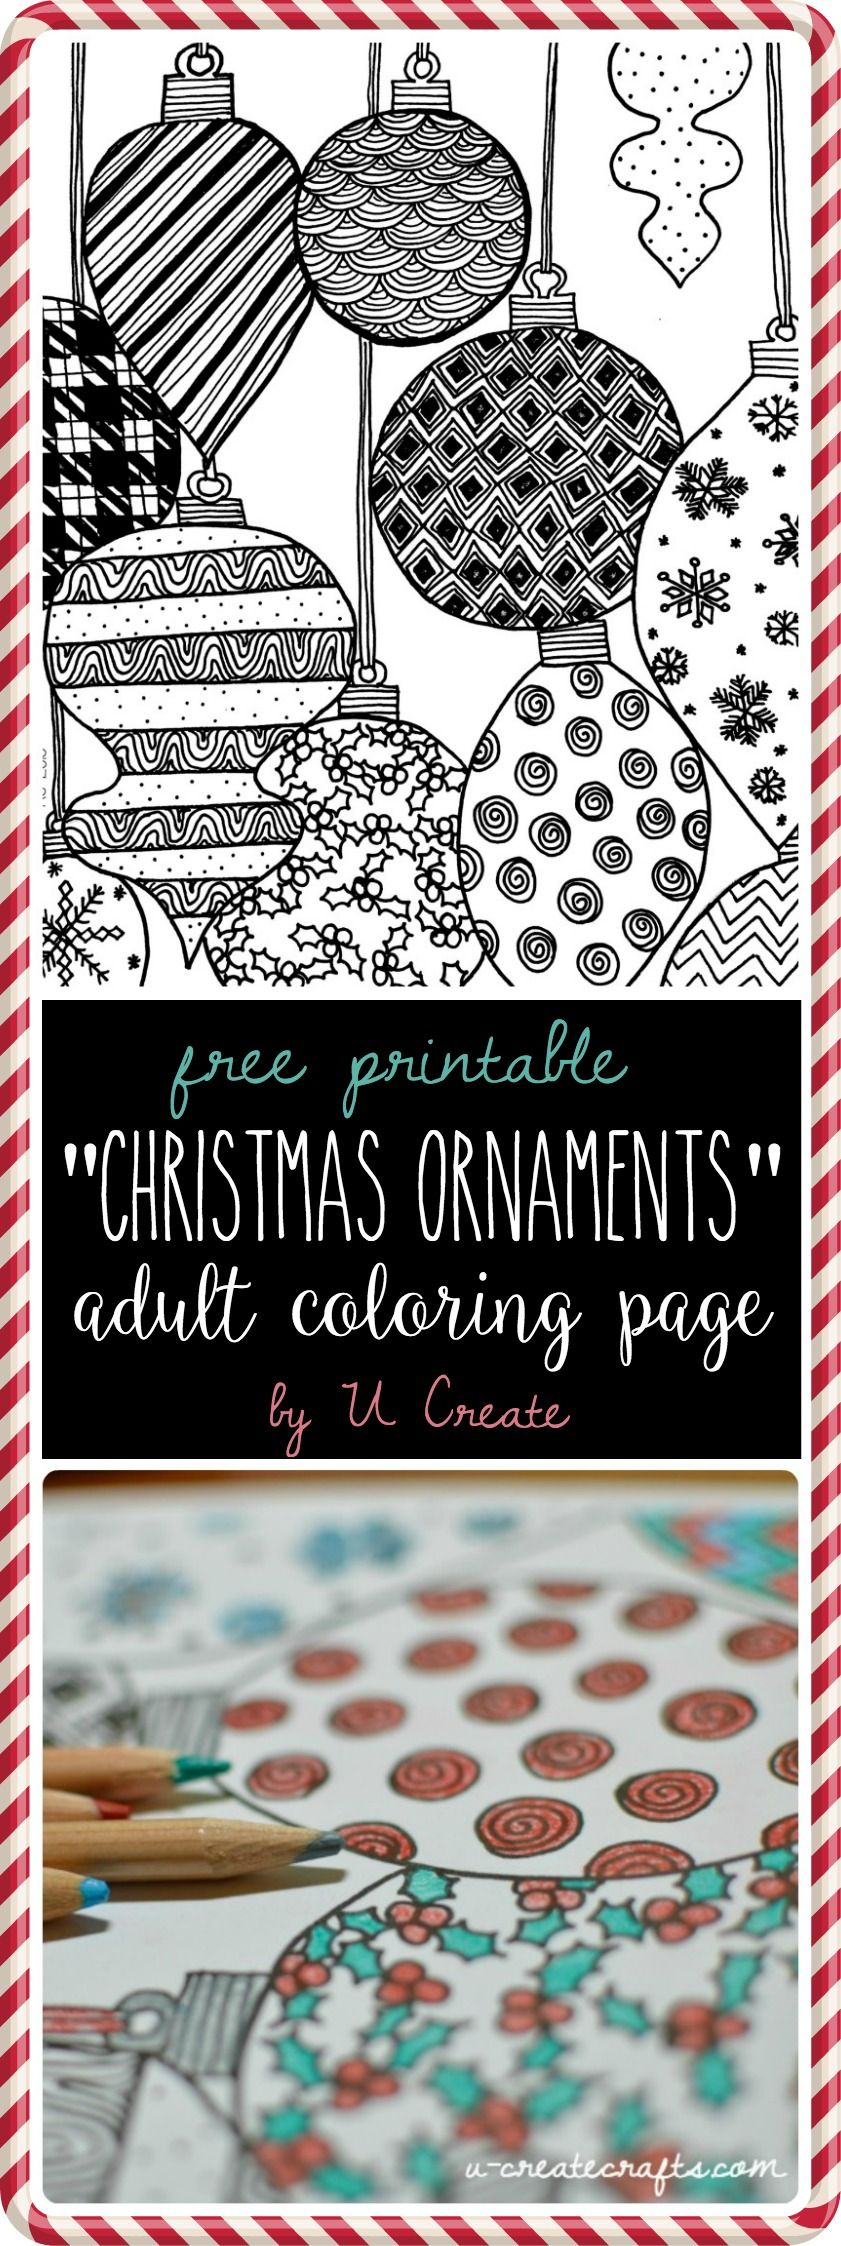 Christmas Ornaments free coloring page by U Create! | Holiday ...